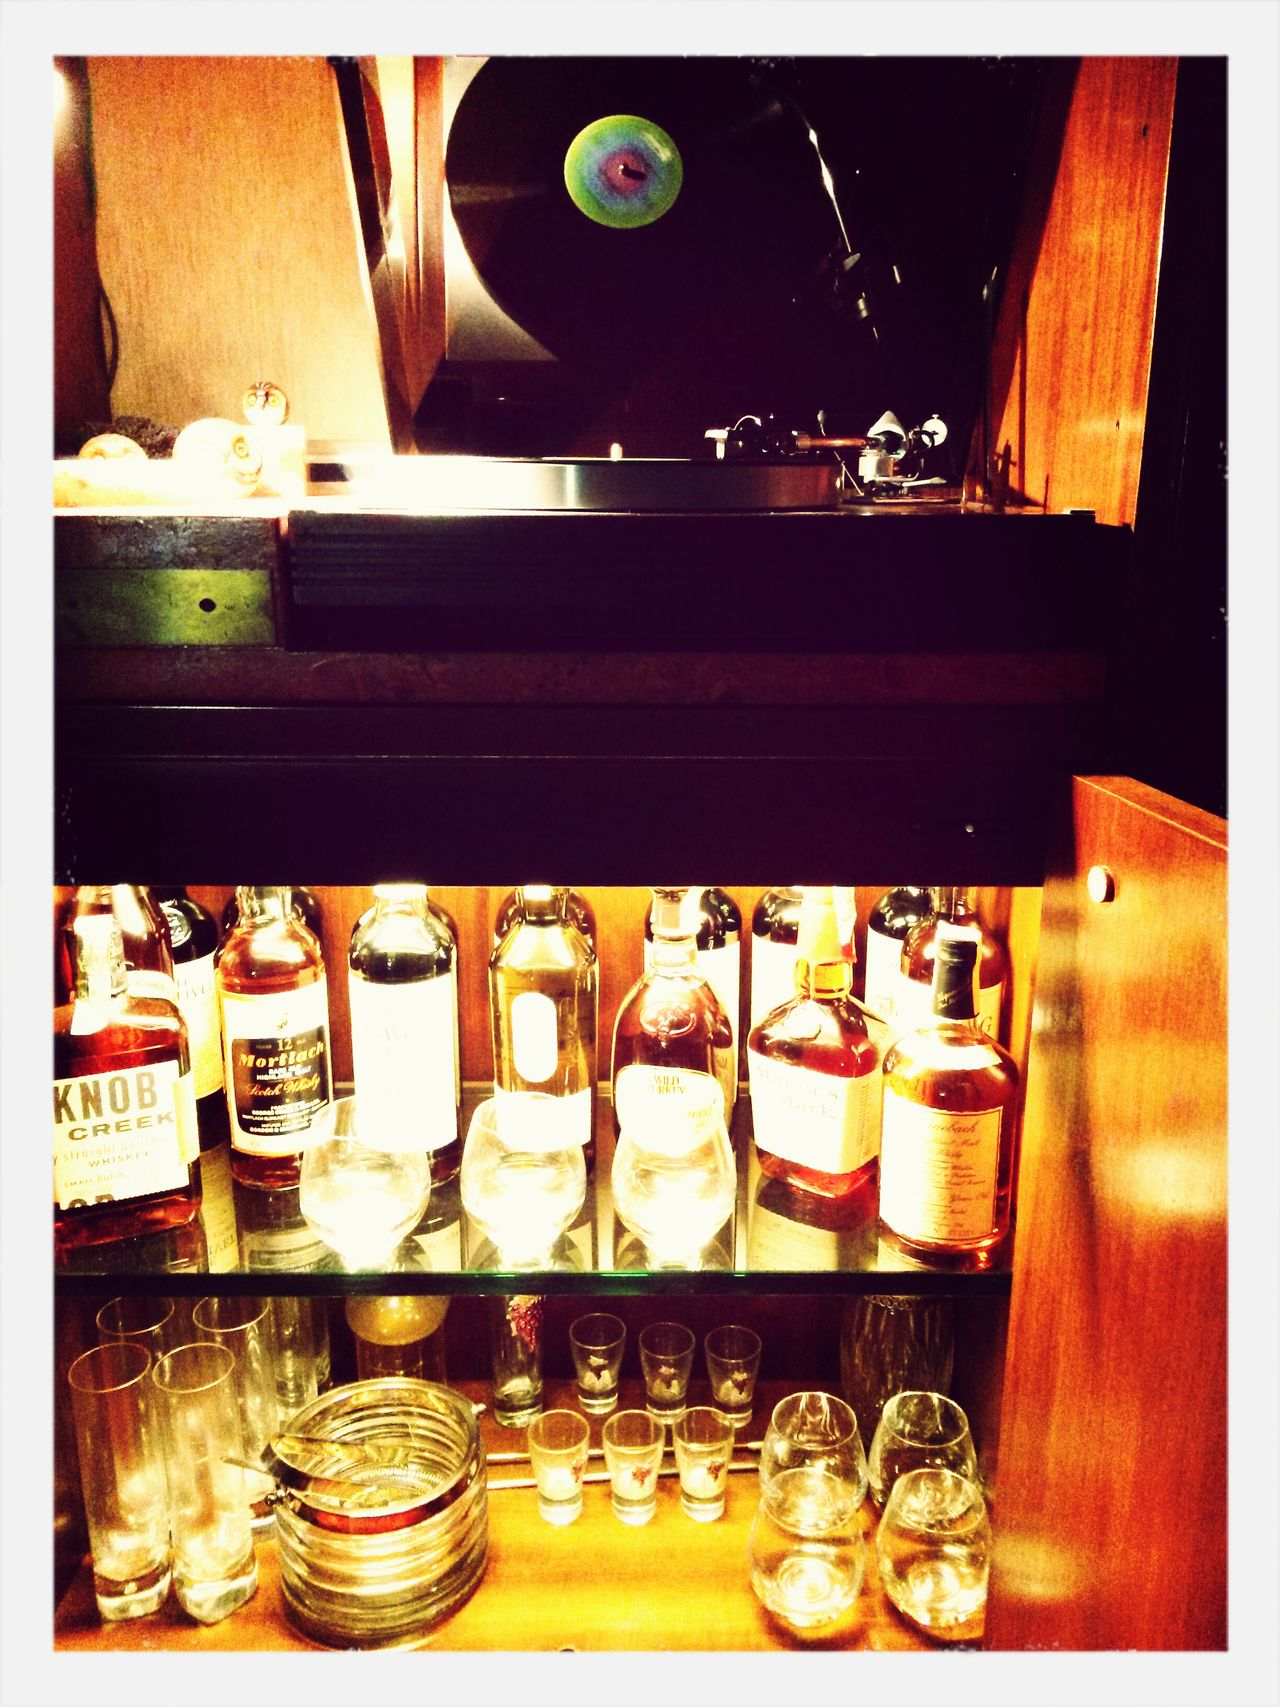 Music and drink 33 Rpm Record Vinile Whyskey Drinks And Bottles